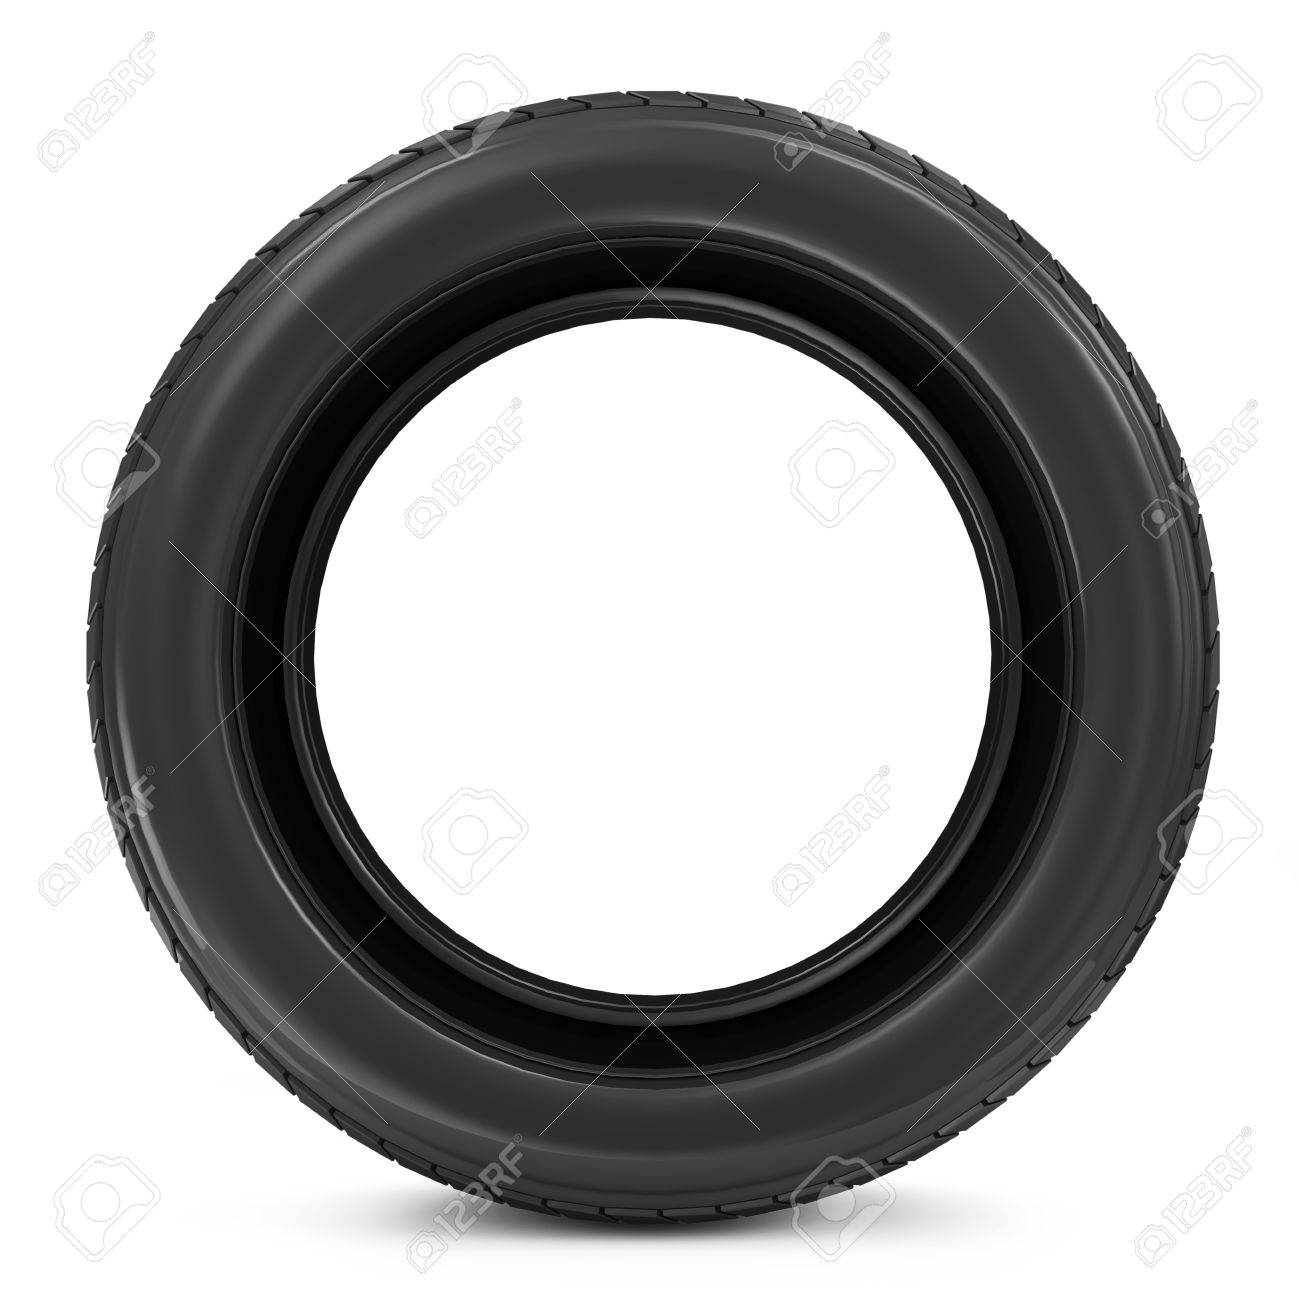 Car Tire isolated on white background Stock Photo - 20241084